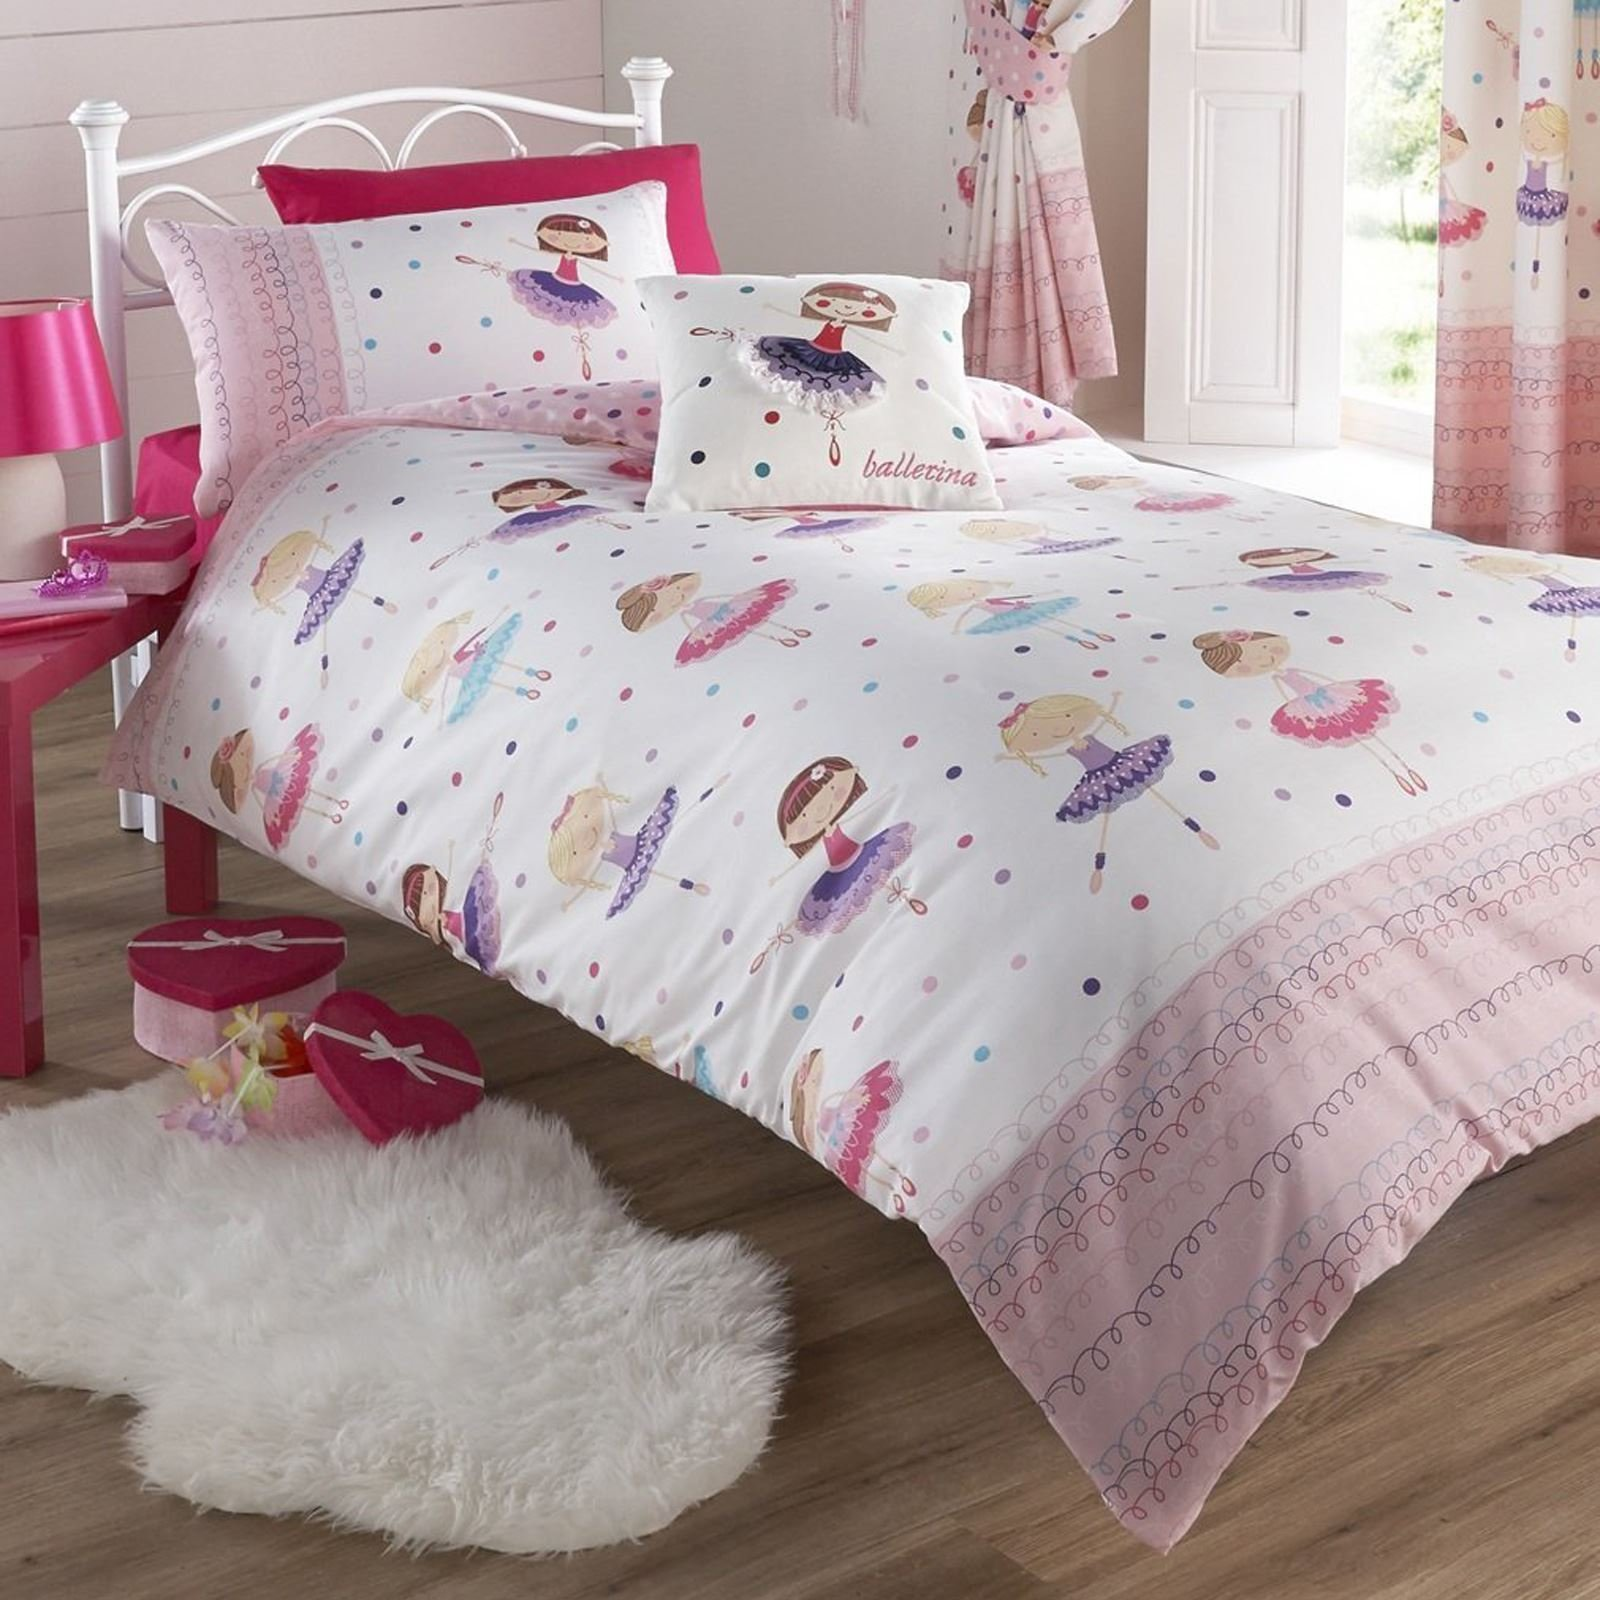 Best Ballerina Design Duvet Cover Sets In Various Sizes Girls With Pictures